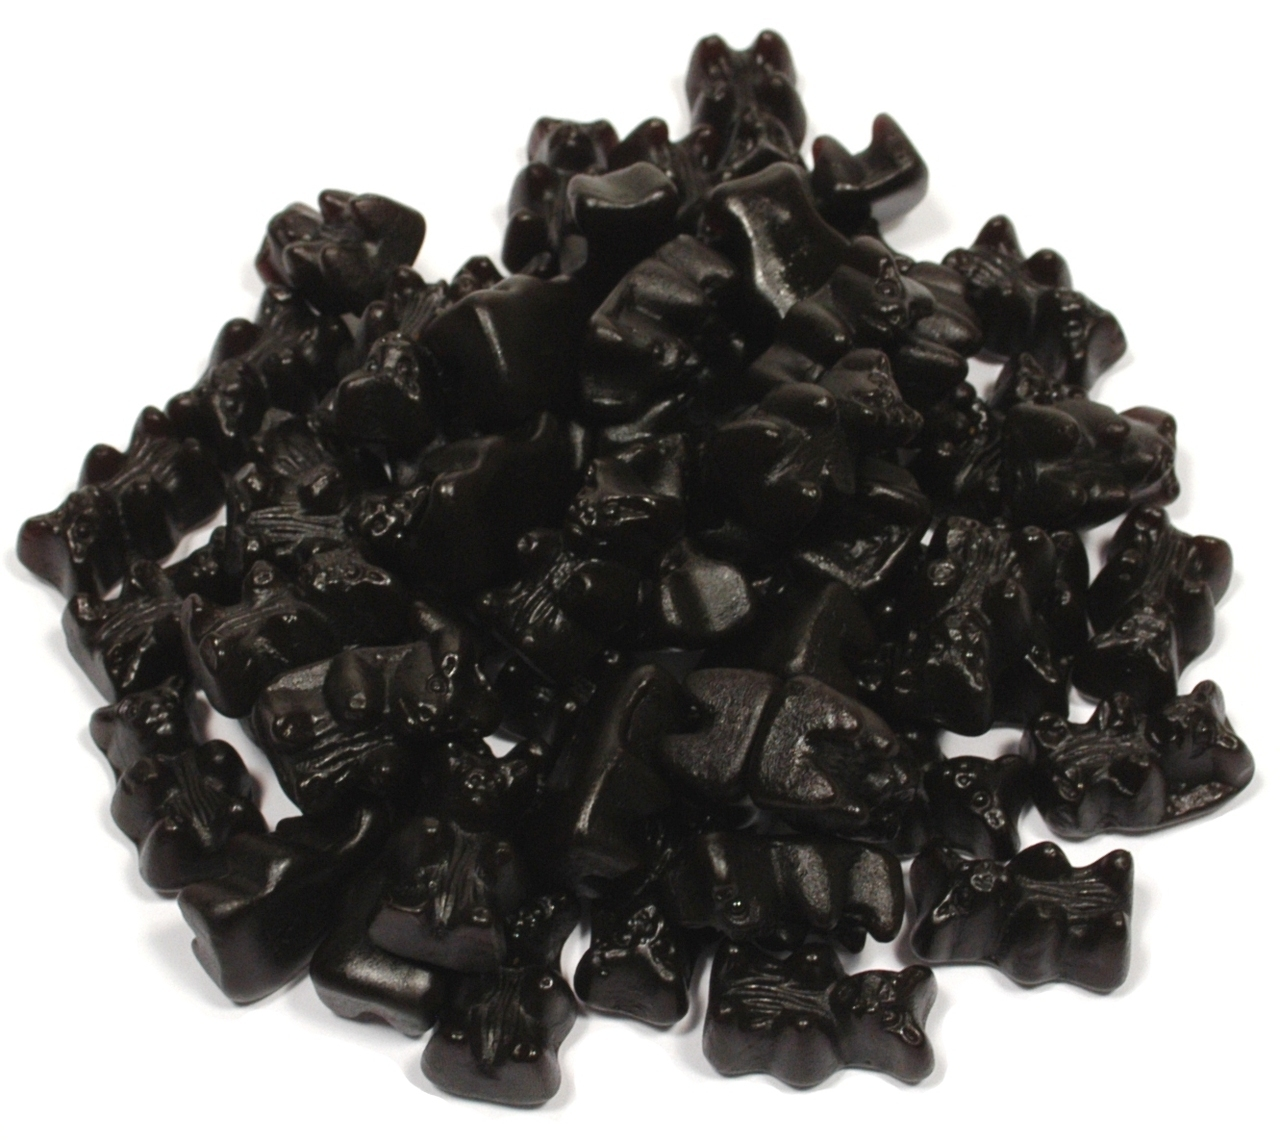 S/F LICORICE BEARS